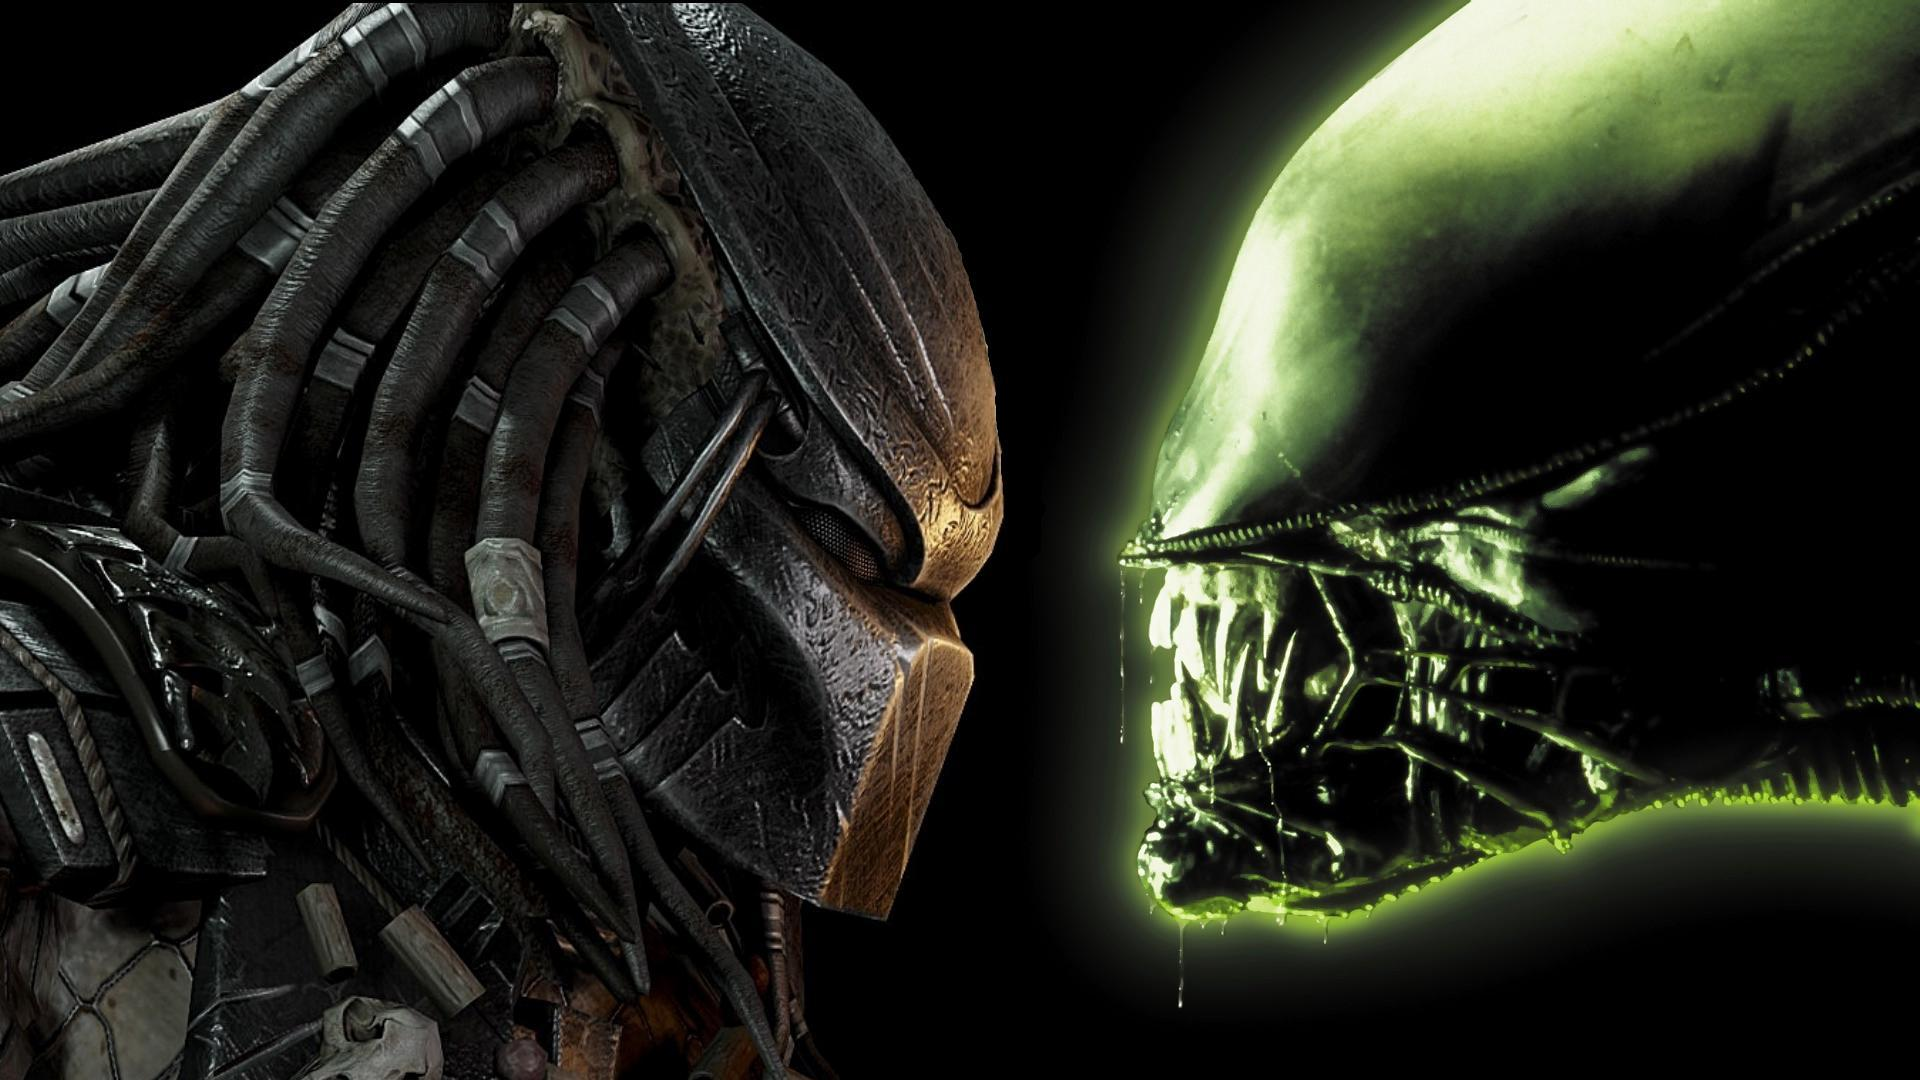 Which movie series do you like more: Alien or Predator?